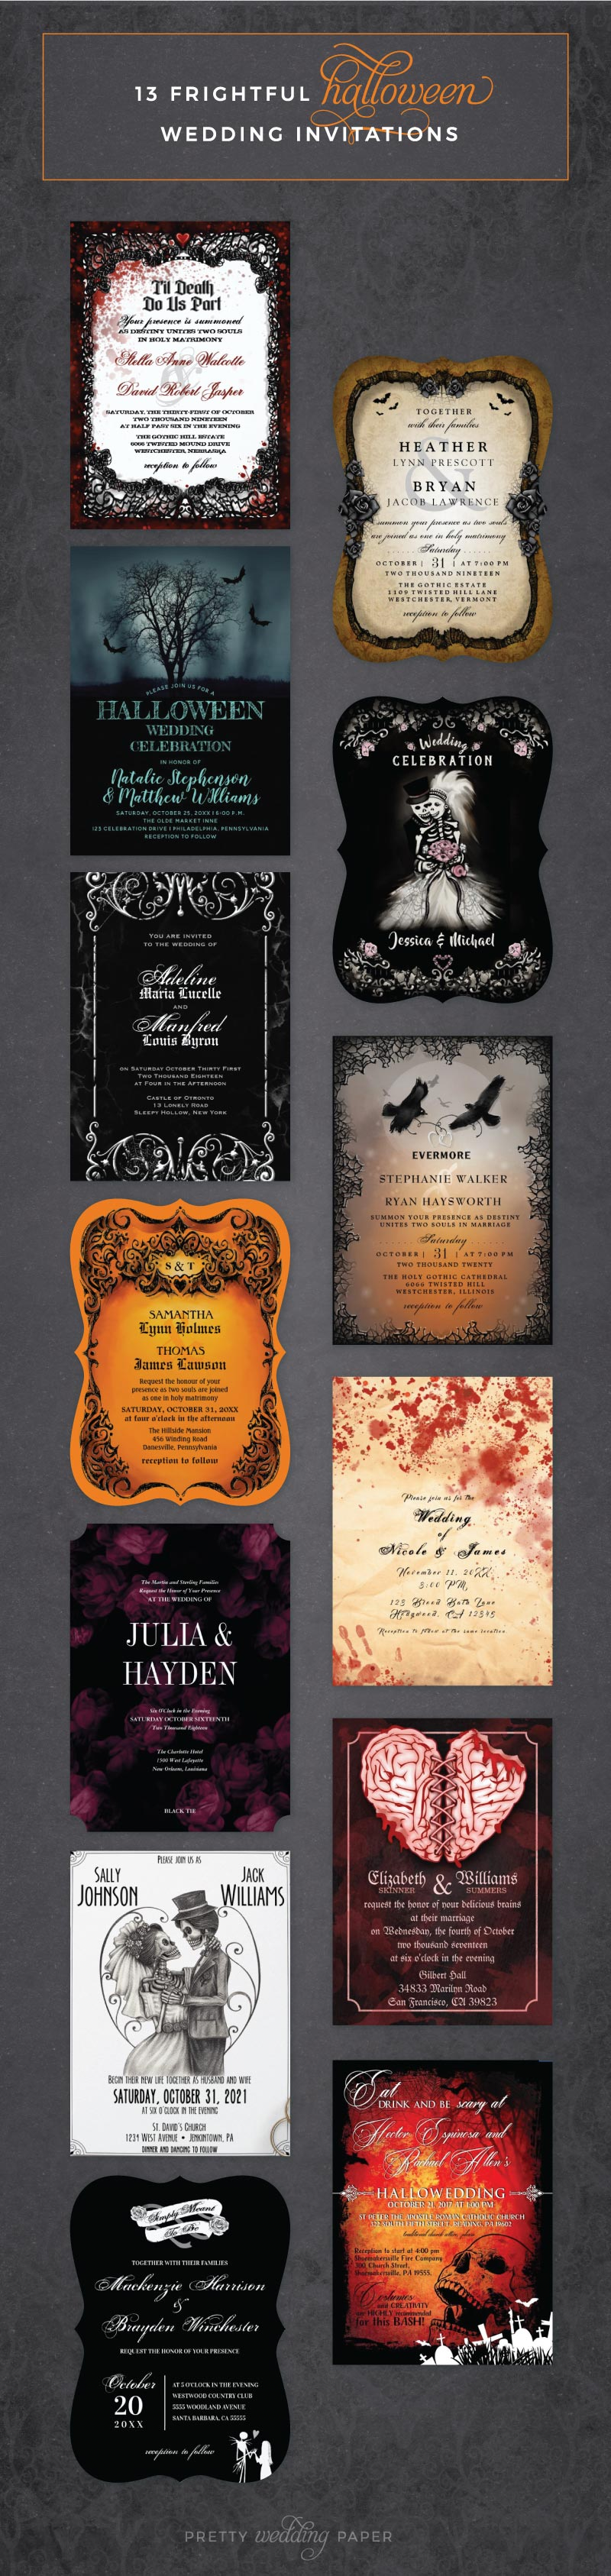 13 Frightful Halloween Wedding Invitations